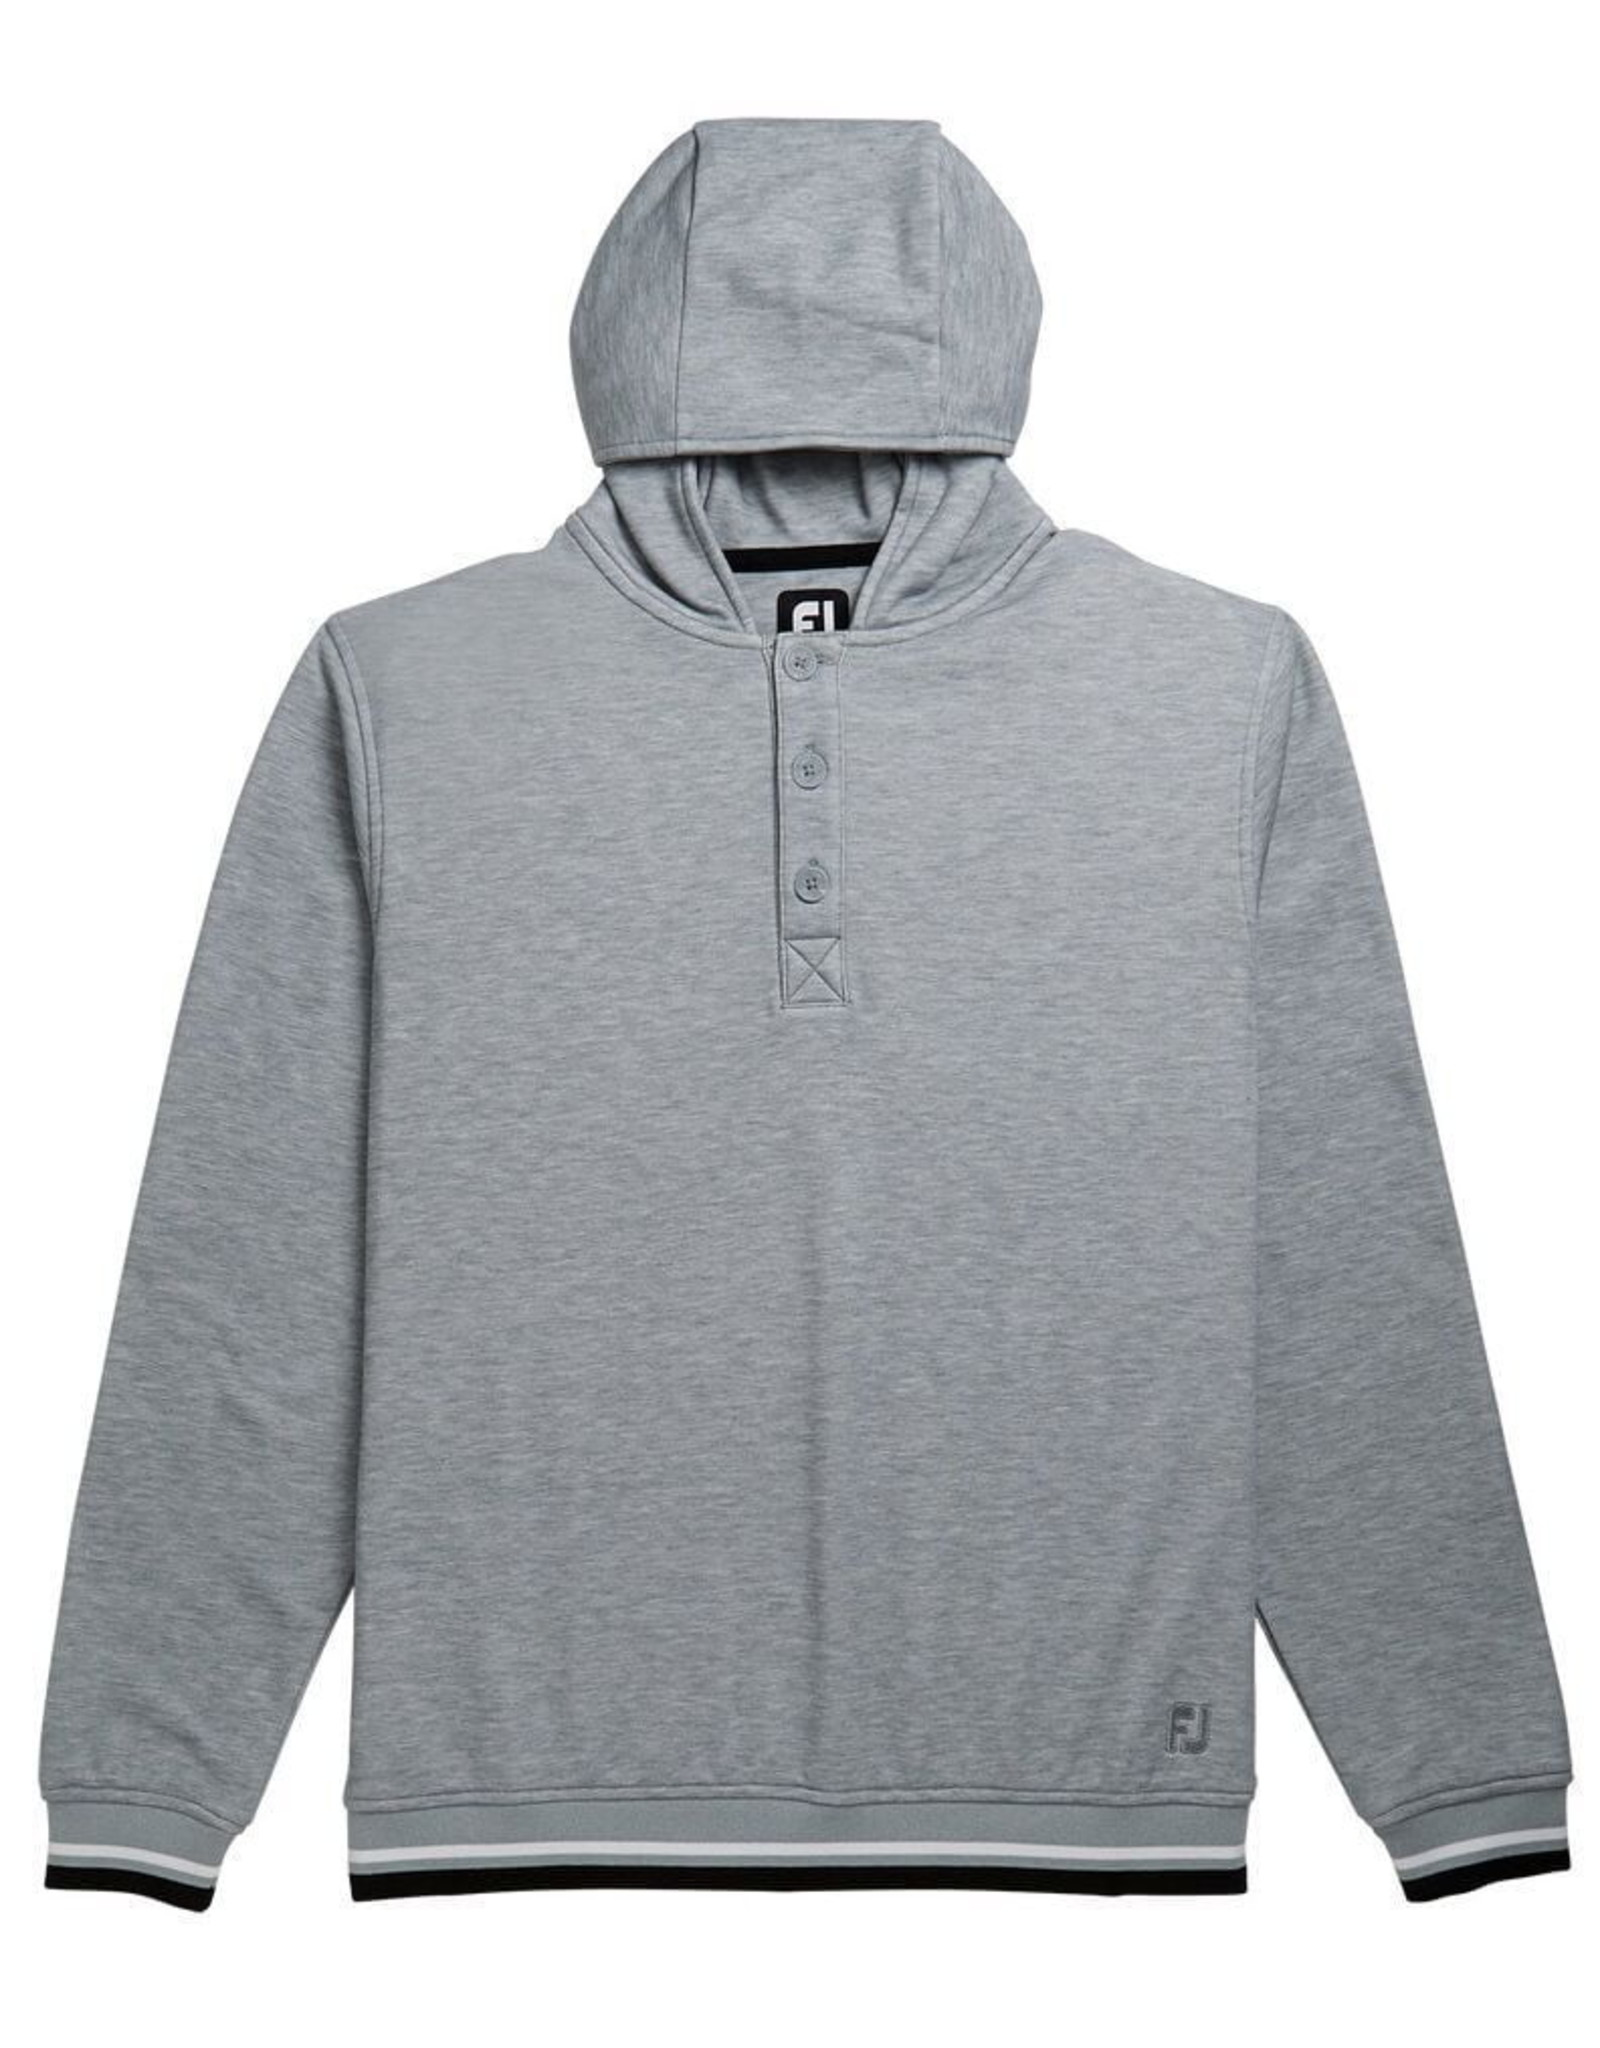 Footjoy FJ 25120 Jersey Fleece Hoodie Grey Medium